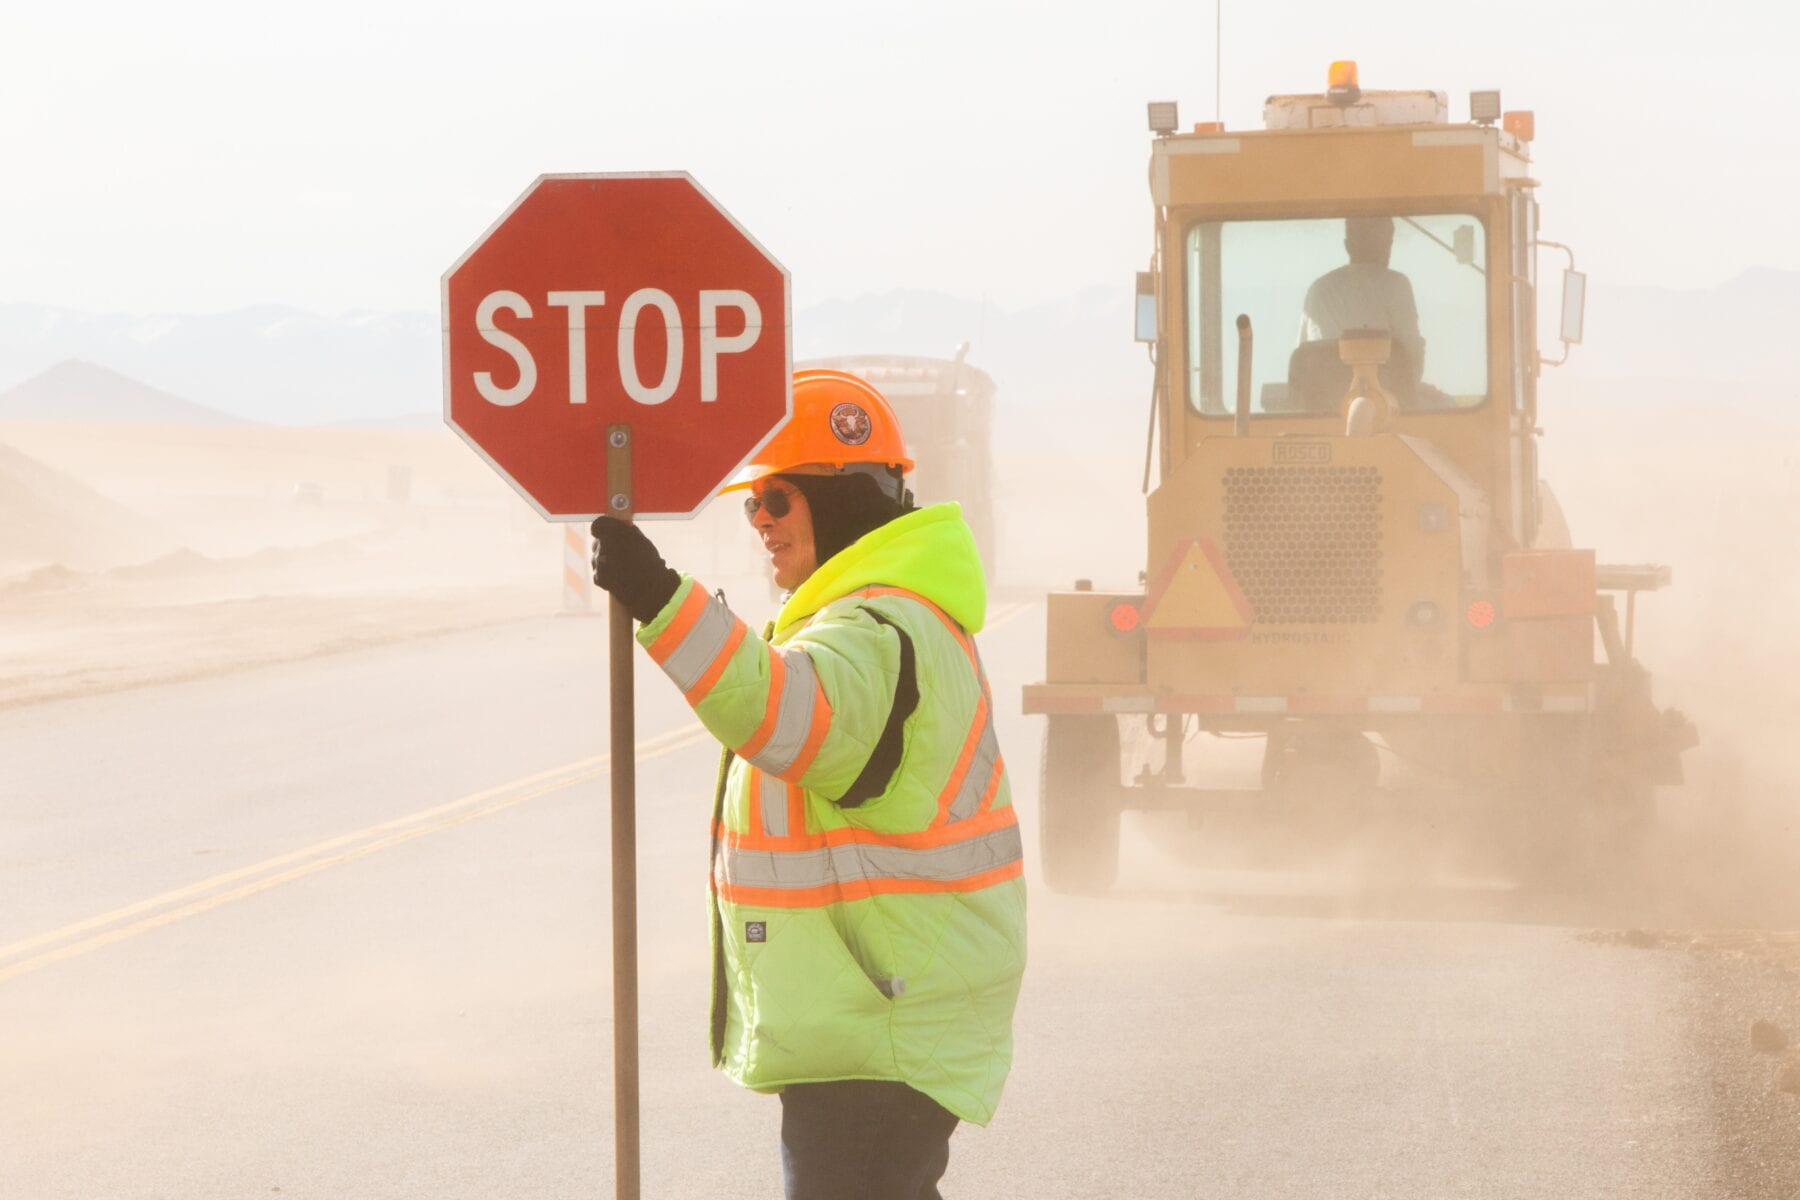 Practice safety in work zones and keep an eye out for construction workers guiding traffic